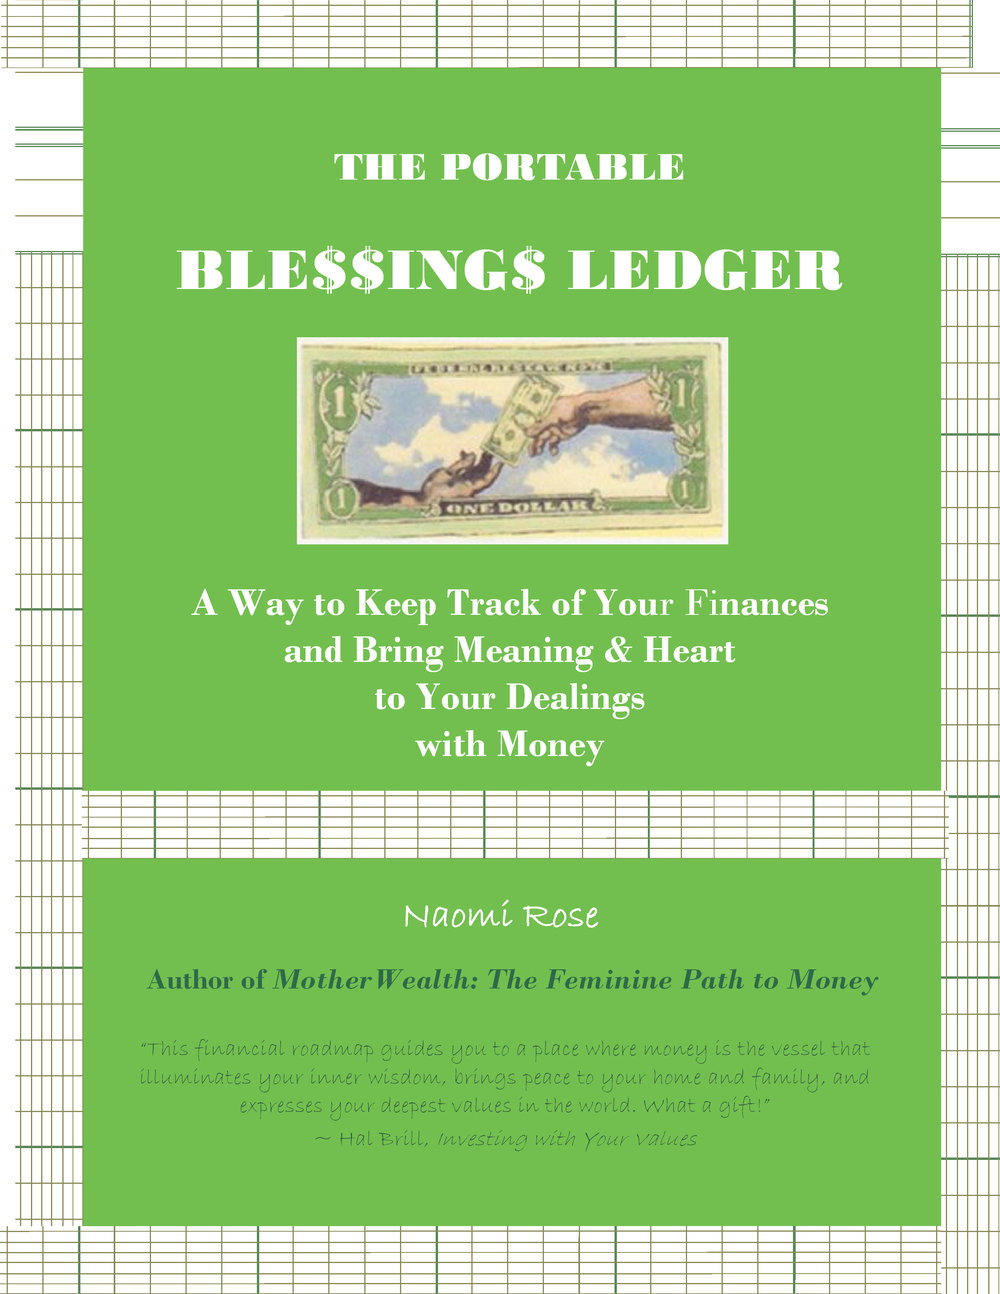 - THE PORTABLE BLESSINGS LEDGER: A way to Keep Track of Your Finances and Bring Meaning & Heart to Your Dealings with Money, by NAOMI ROSEWhat if every time your hands, mind, and heart touched money, something wonderful happened? The Portable Blessings Ledger helps you bring your heart and finances together in an immediate, hands-on way — and reap the benefits and blessings that accrue.